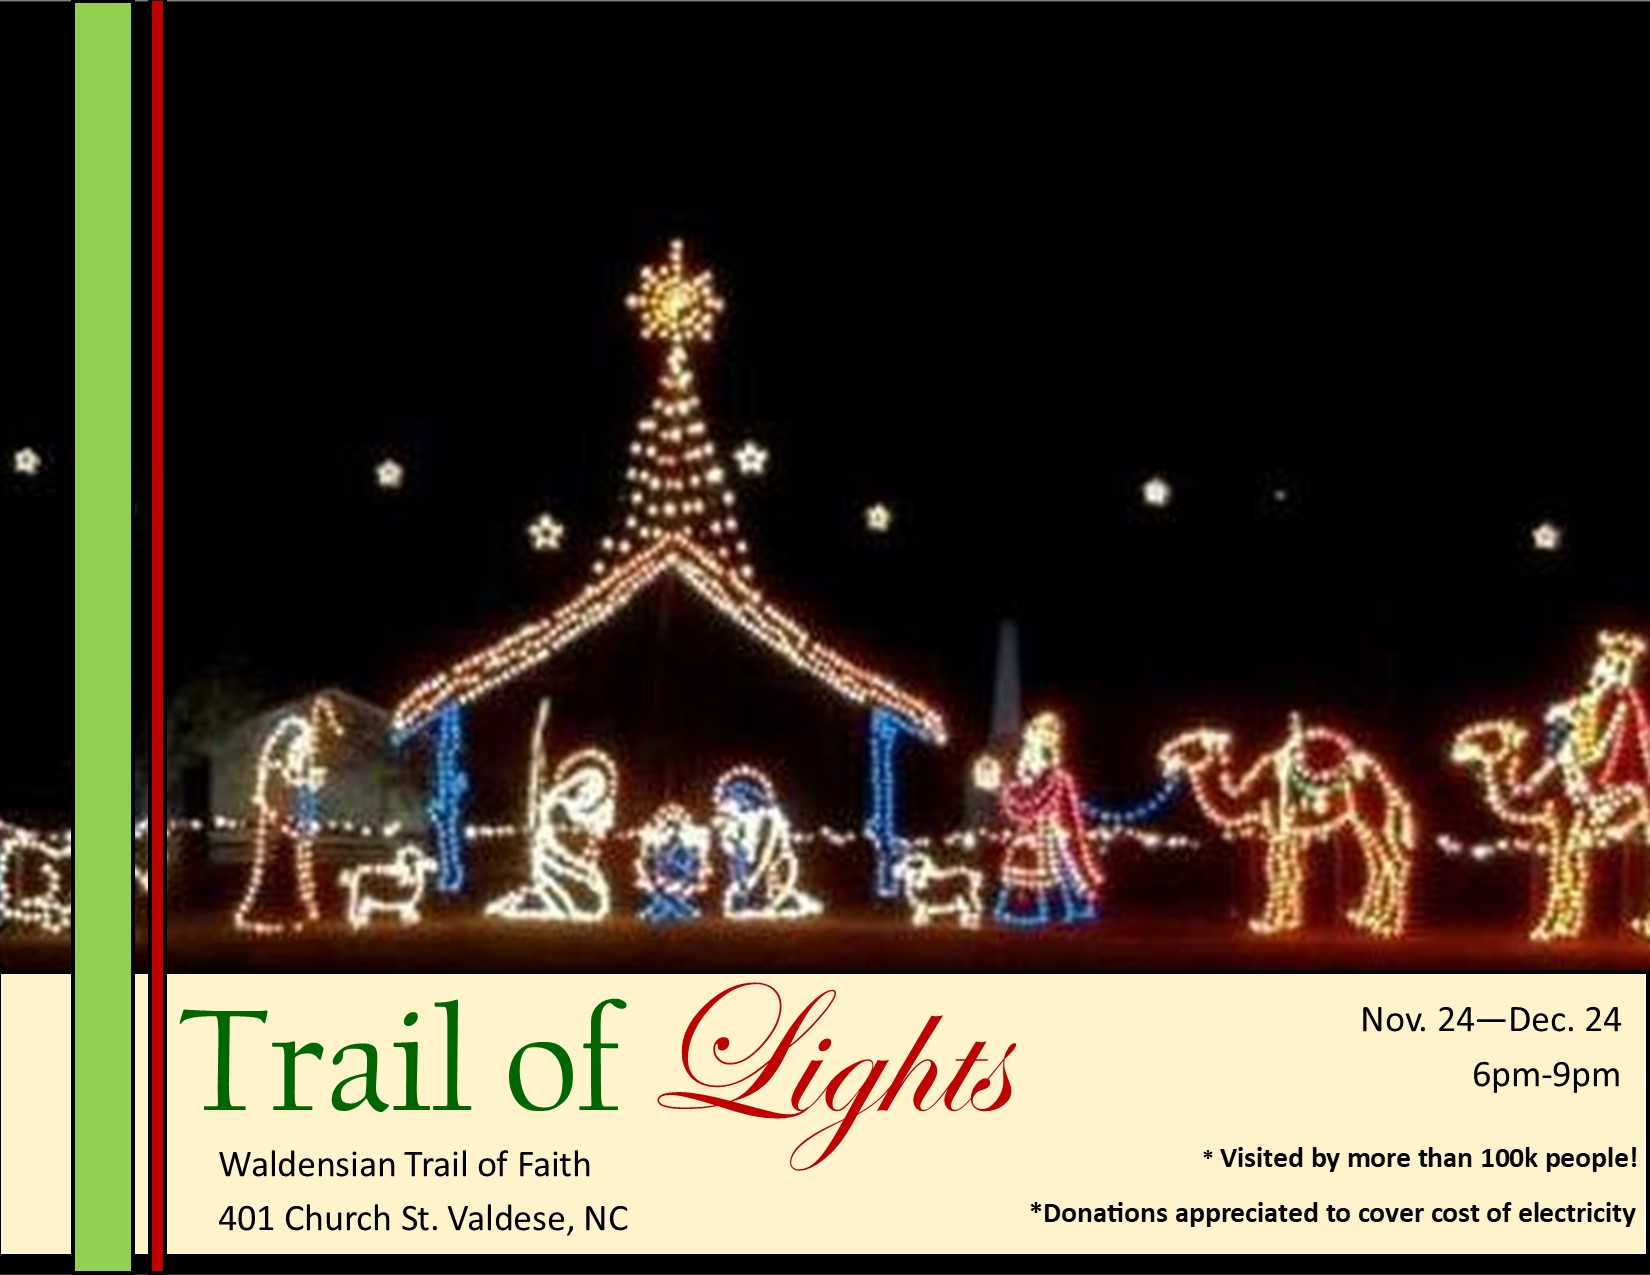 Trail of lights flyer 3